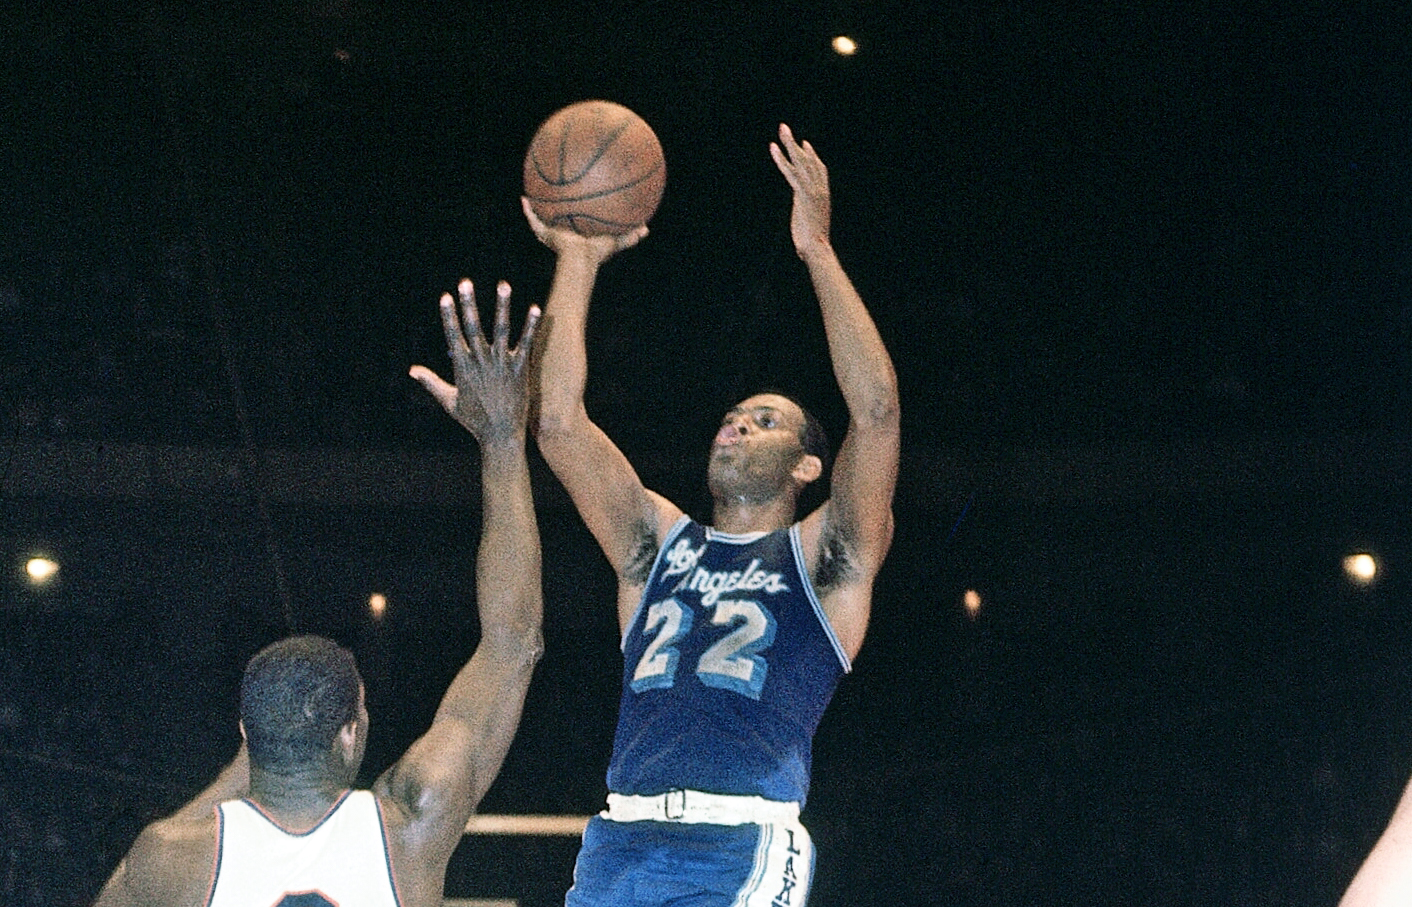 Elgin Baylor, first of the airborne, blazed vertical trail of basketball artistry